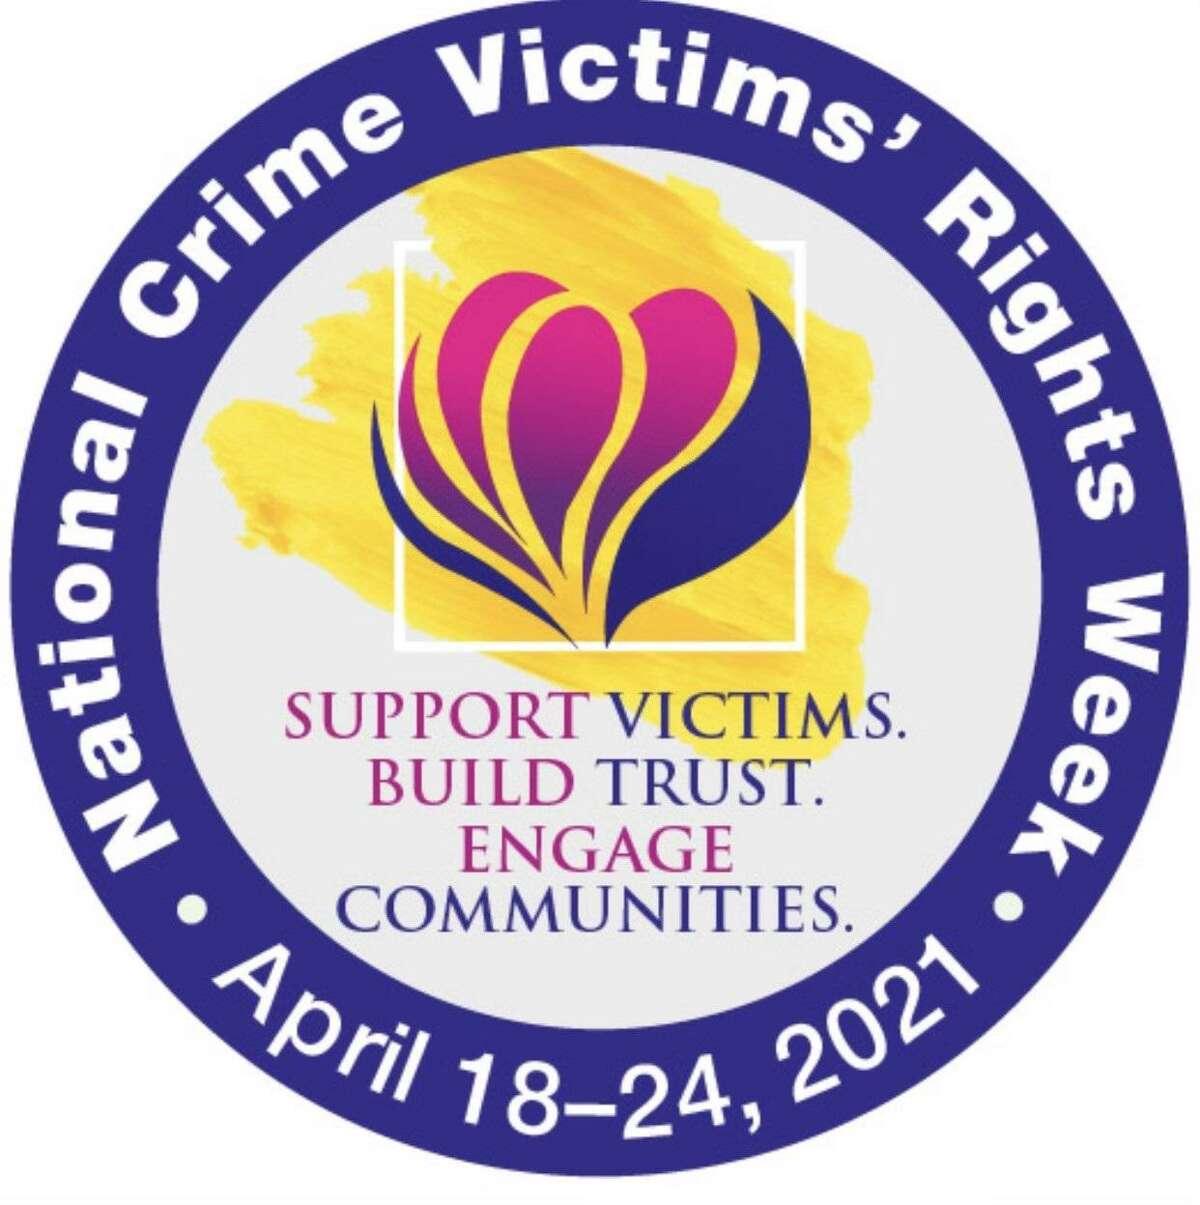 The Webb County Sheriff's Office received a grant of $5,000 to promote National Crime Victims' Rights Week.